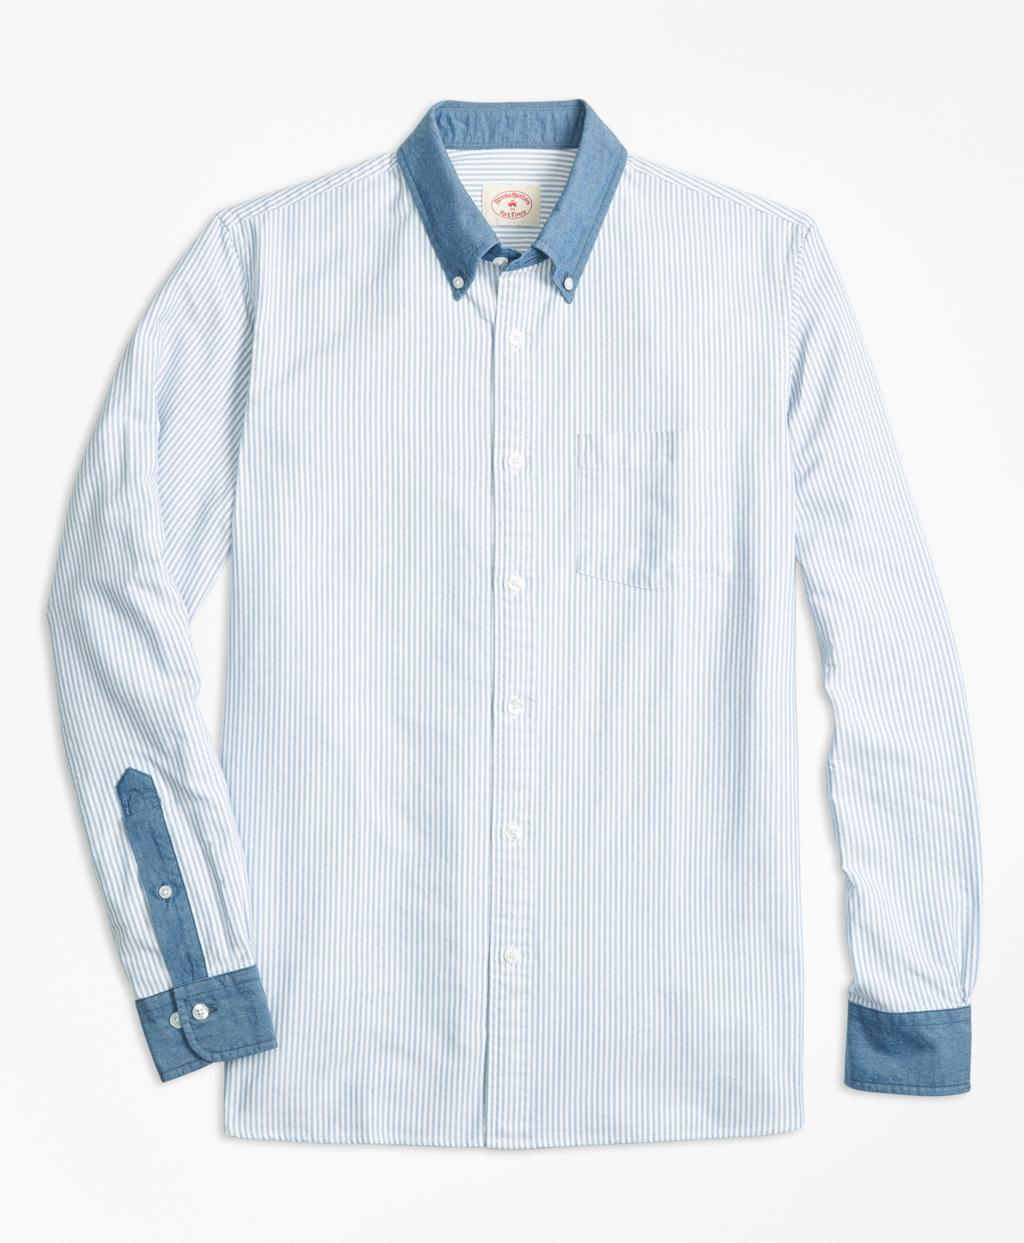 Lyst brooks brothers chambray trim striped cotton oxford for Brooks brothers sports shirts